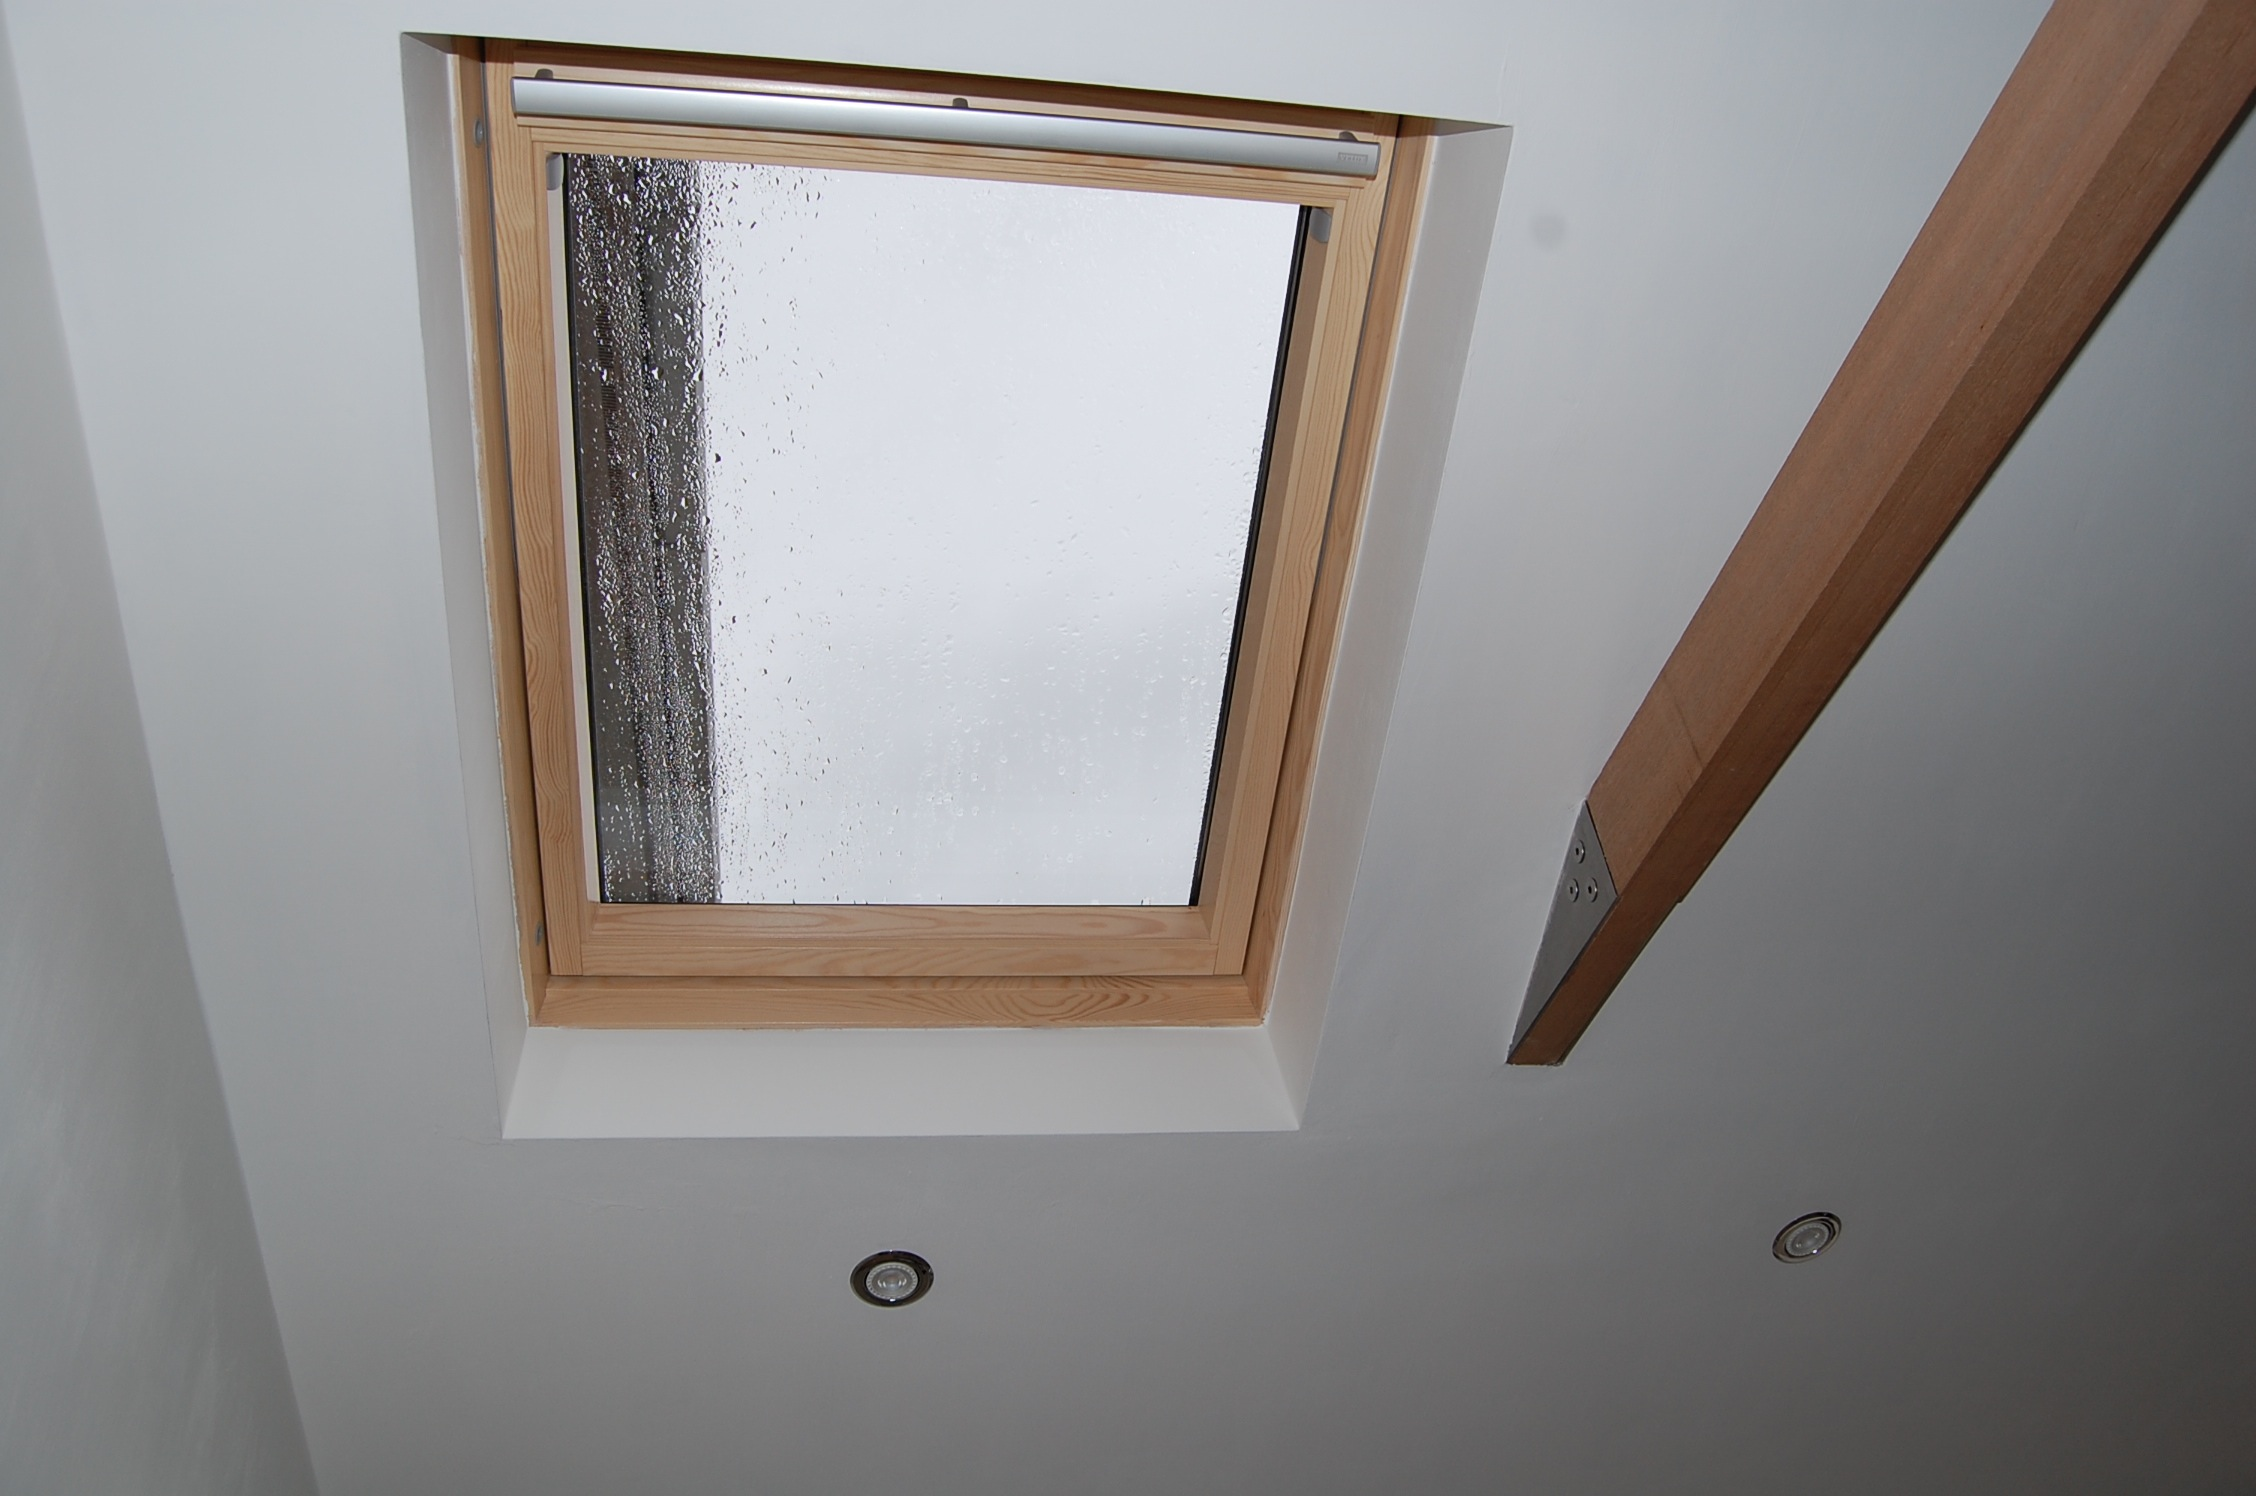 Hardwood Timber Tie Strut Velux Rooflight It S All About Attention To Detail Roof Light Garden Room Extensions Garden Room